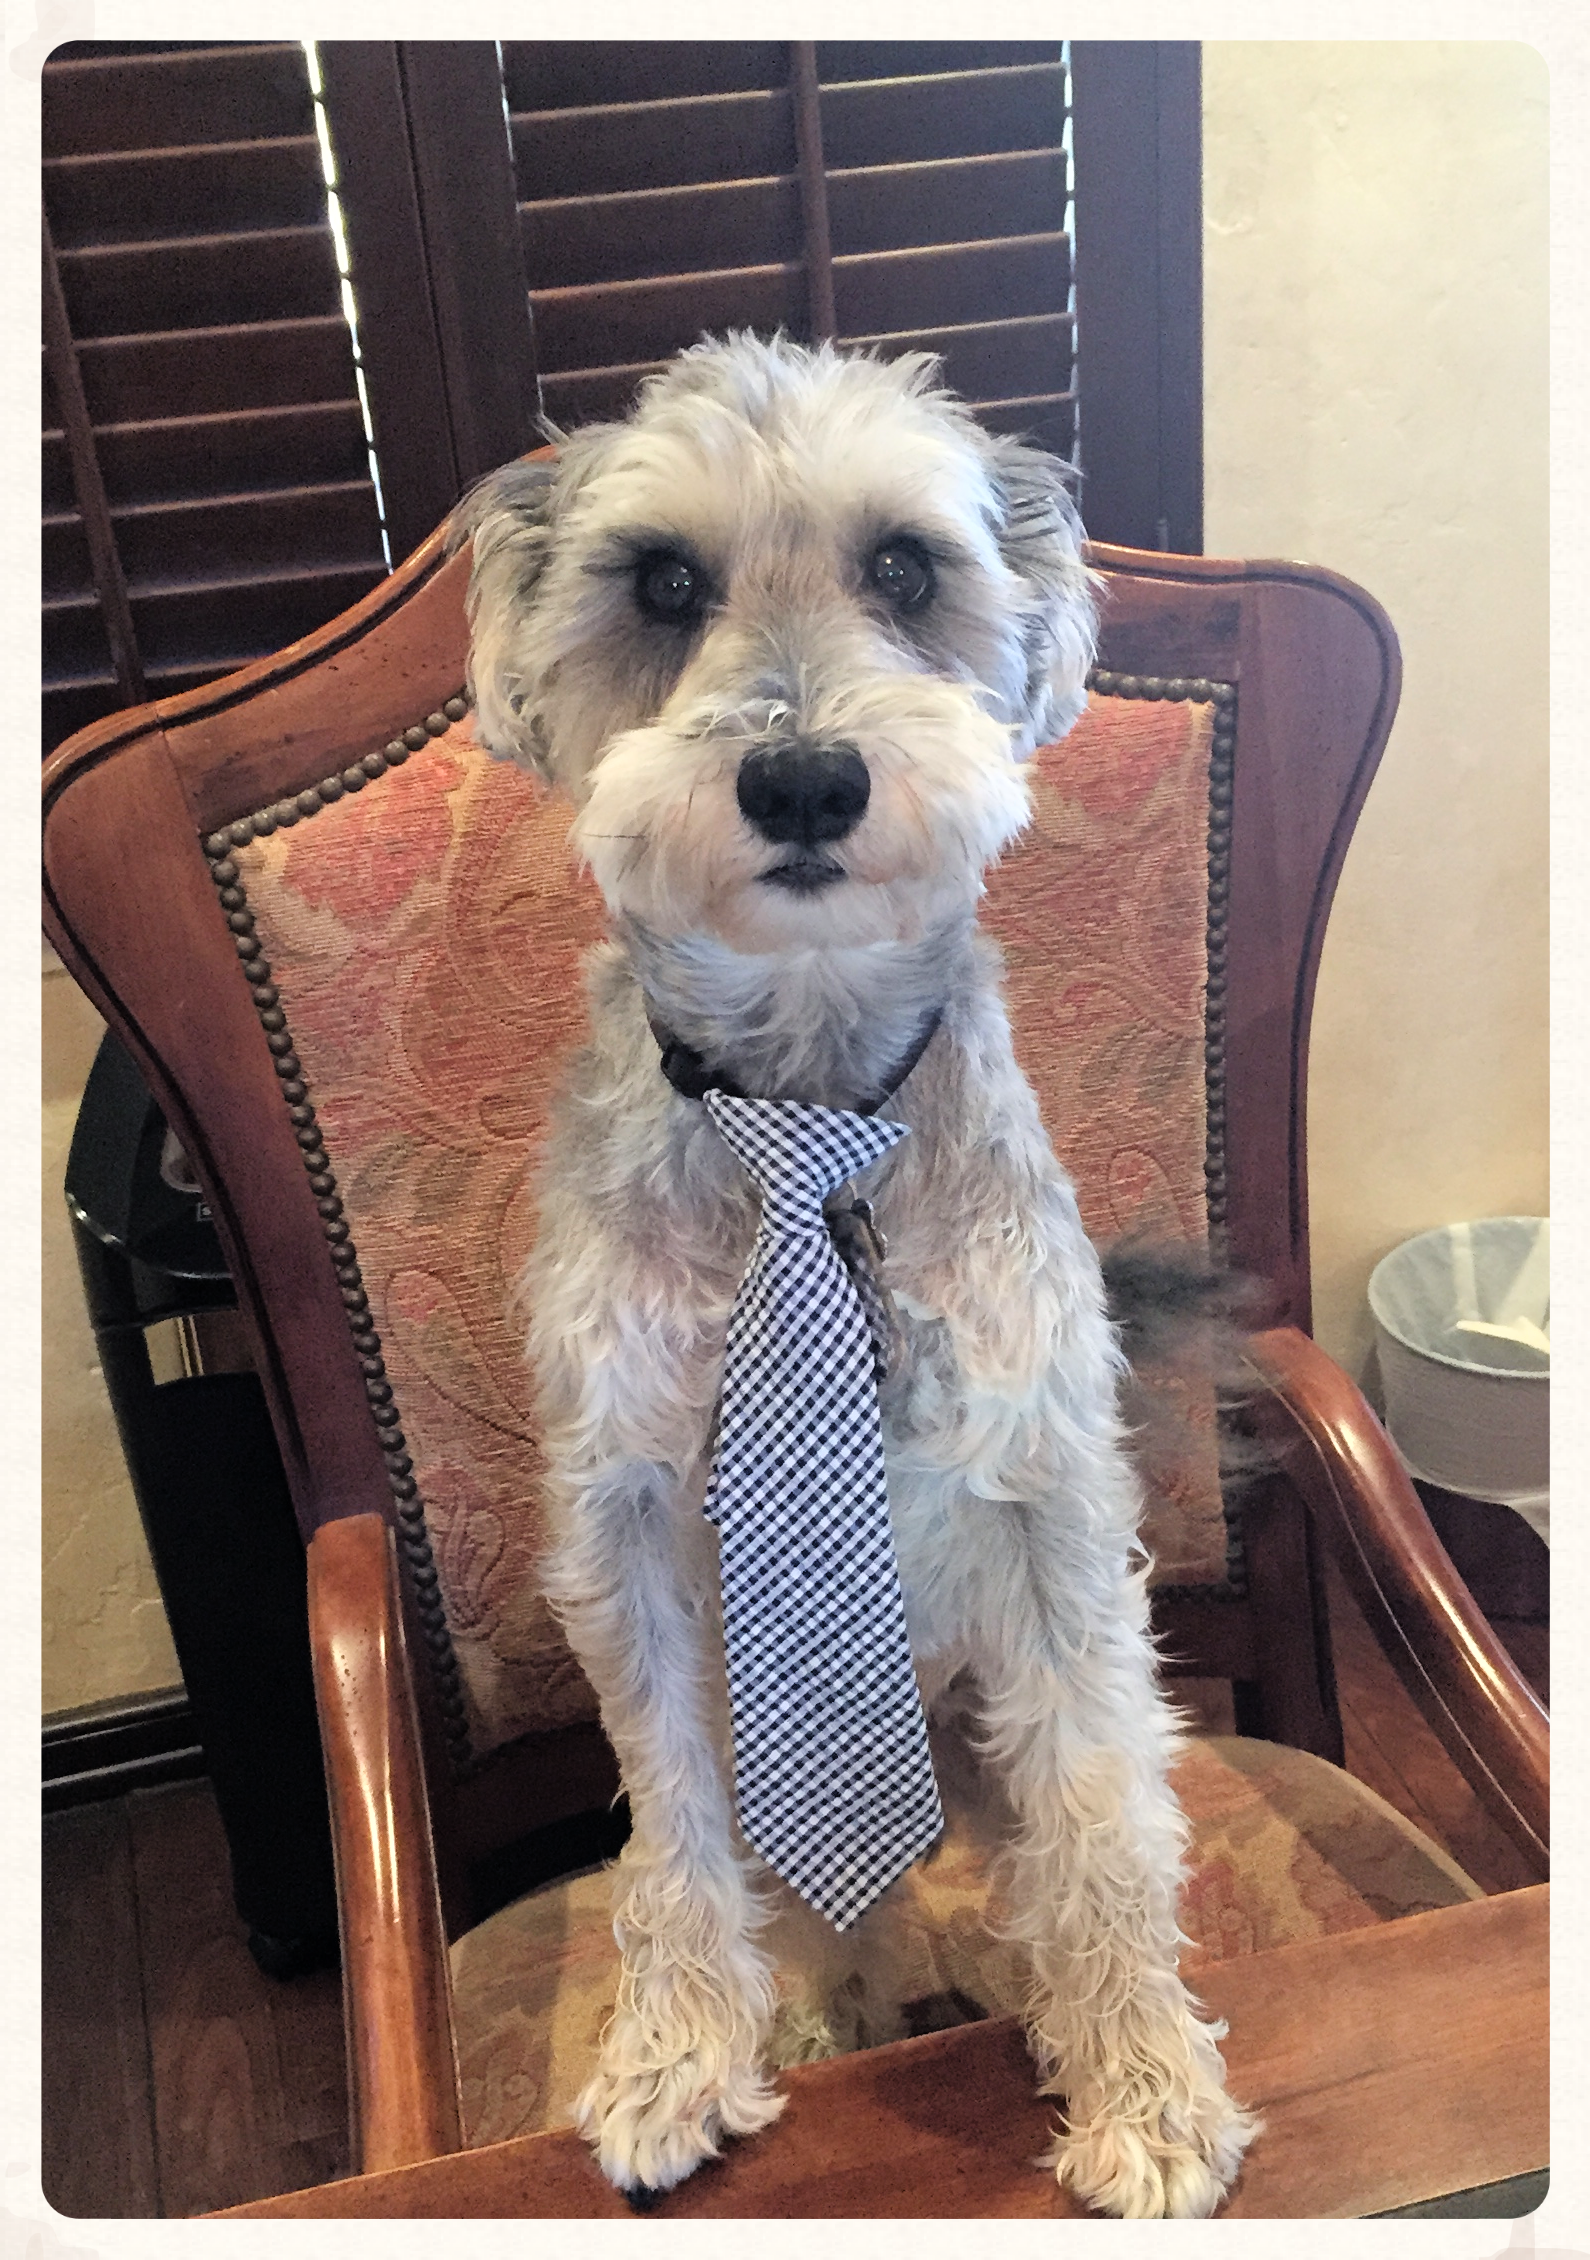 Professor Dog provides inspiration for Greendot Bank's effort to create financial products that serve and safeguard consumers' financial lives.